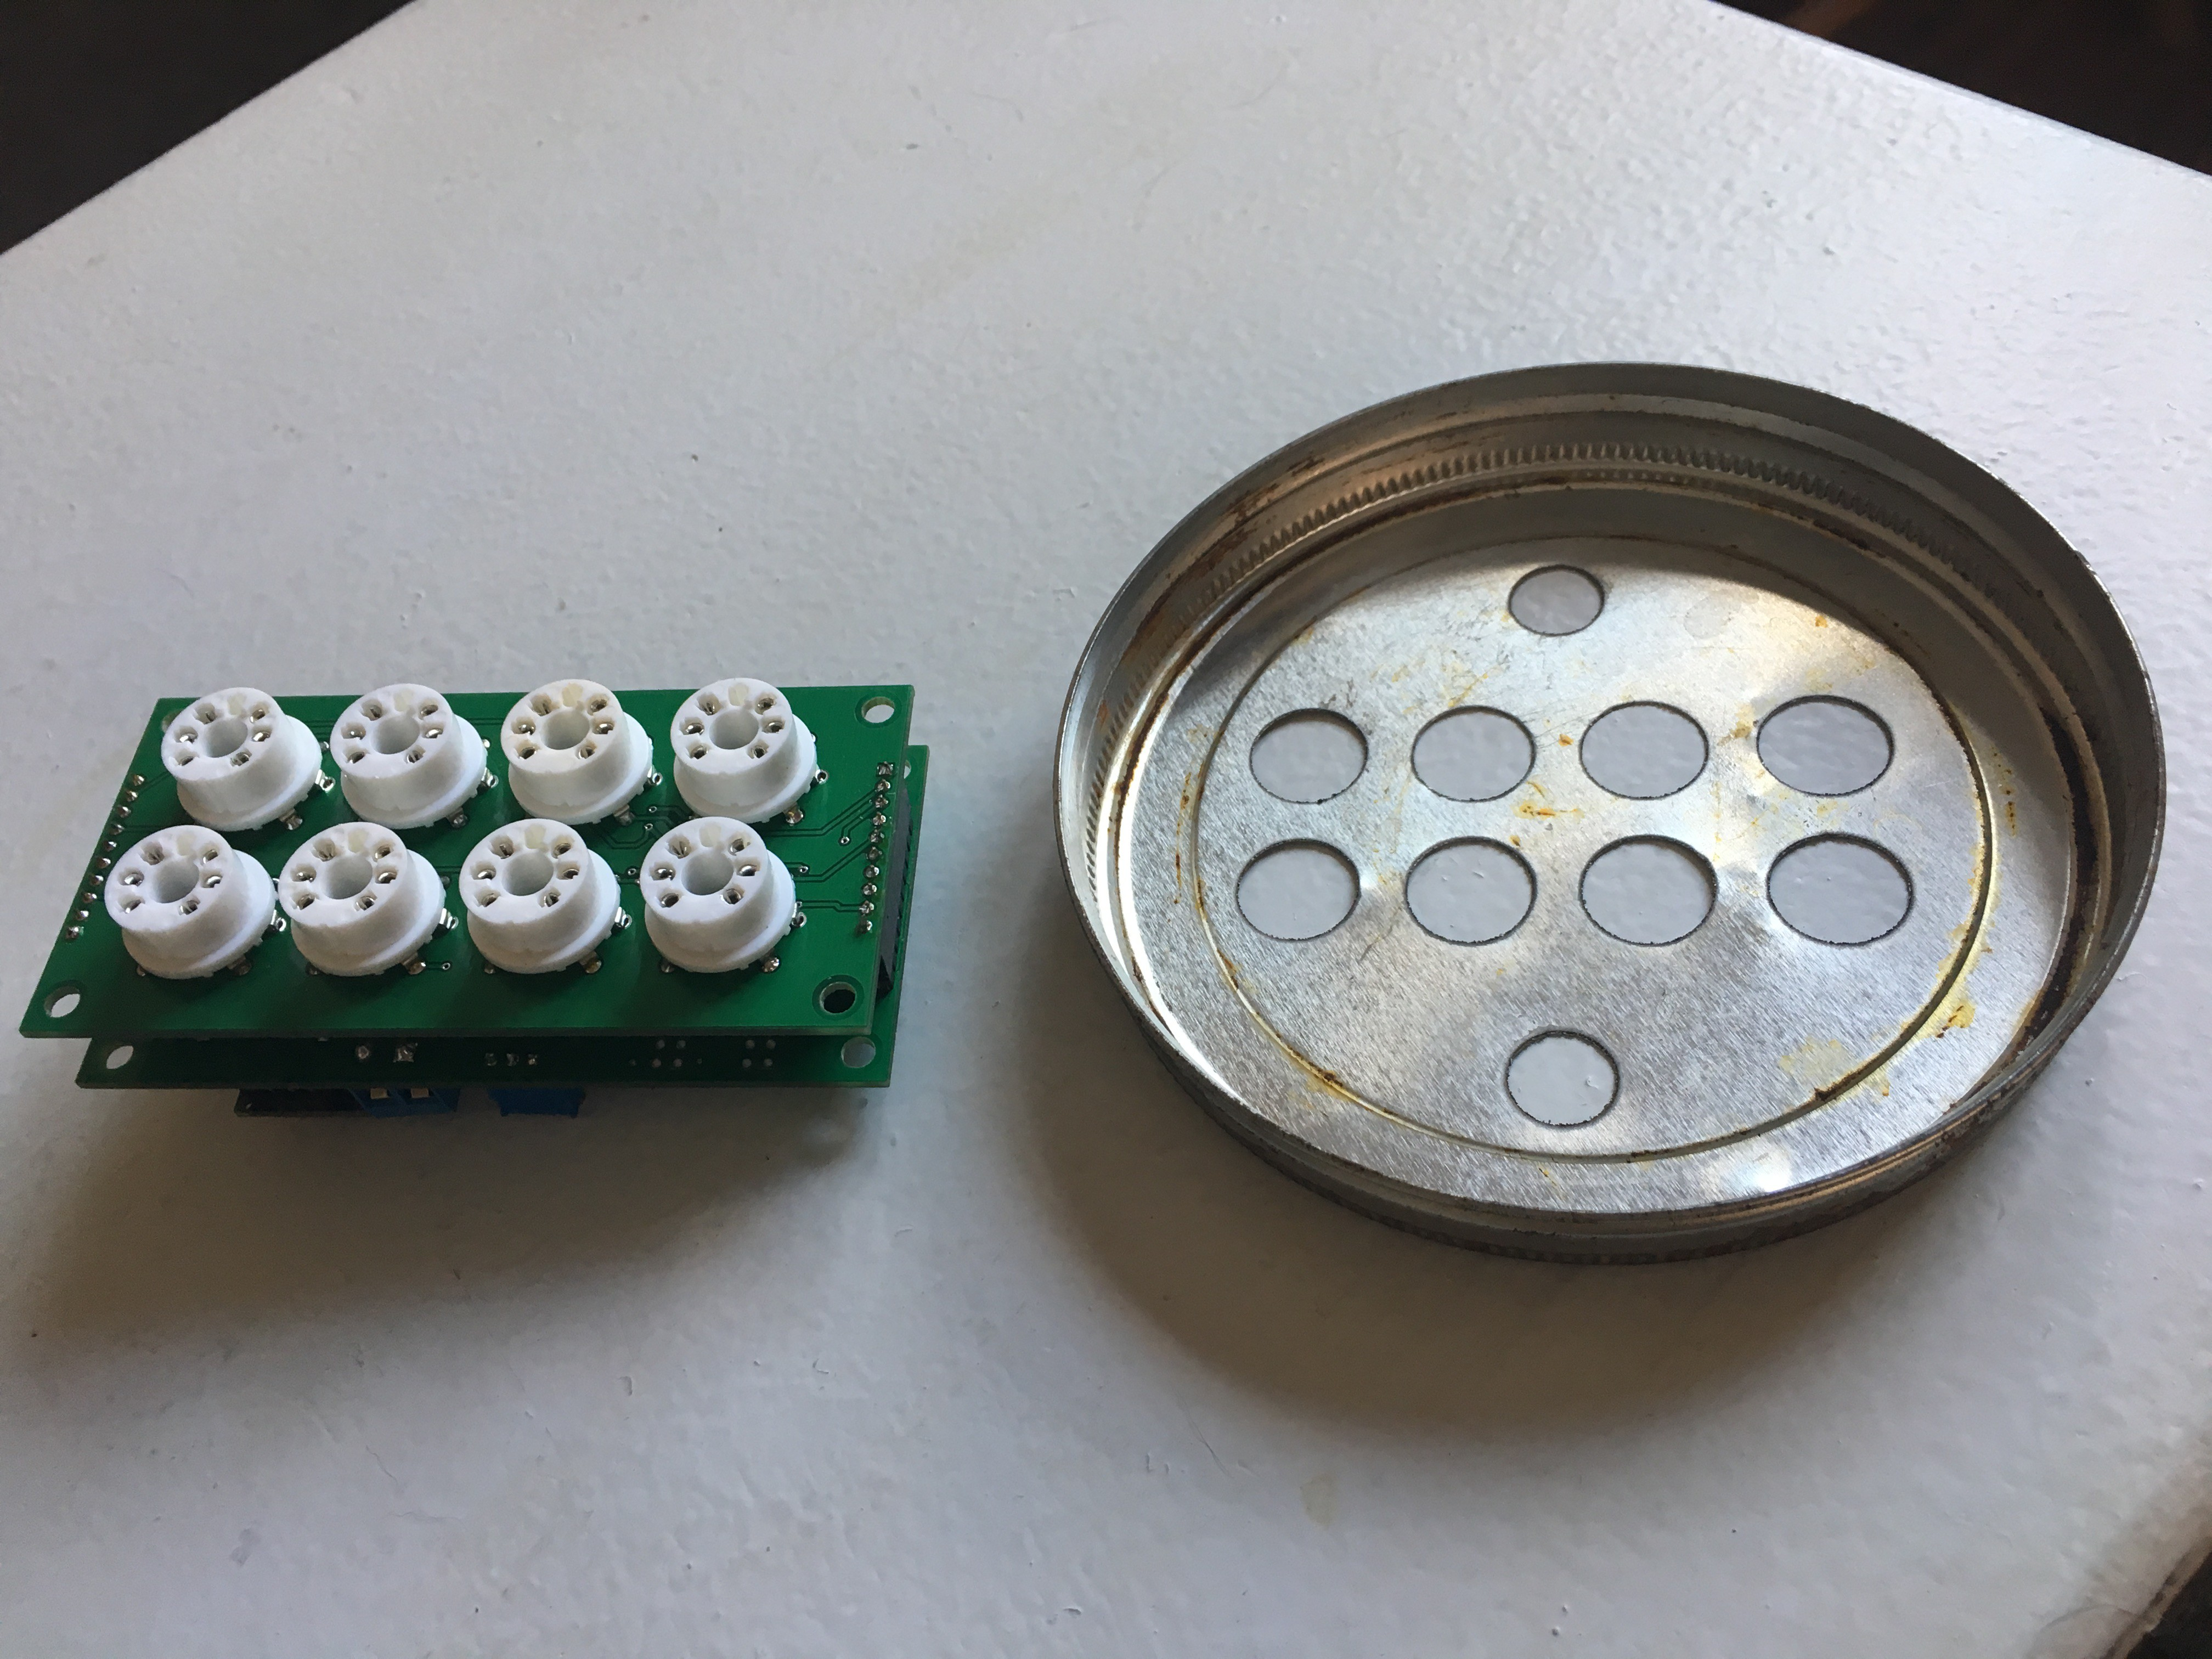 Electronic Nose To Detect Fruit Ripening Circuit Board Under The Waterjet Ready Be Sliced Pieces I Cut Some Holes In Lid Mount Sensor Electronics Outside Of Chamber Also Have An Extra Hole There For Mounting A Temperature